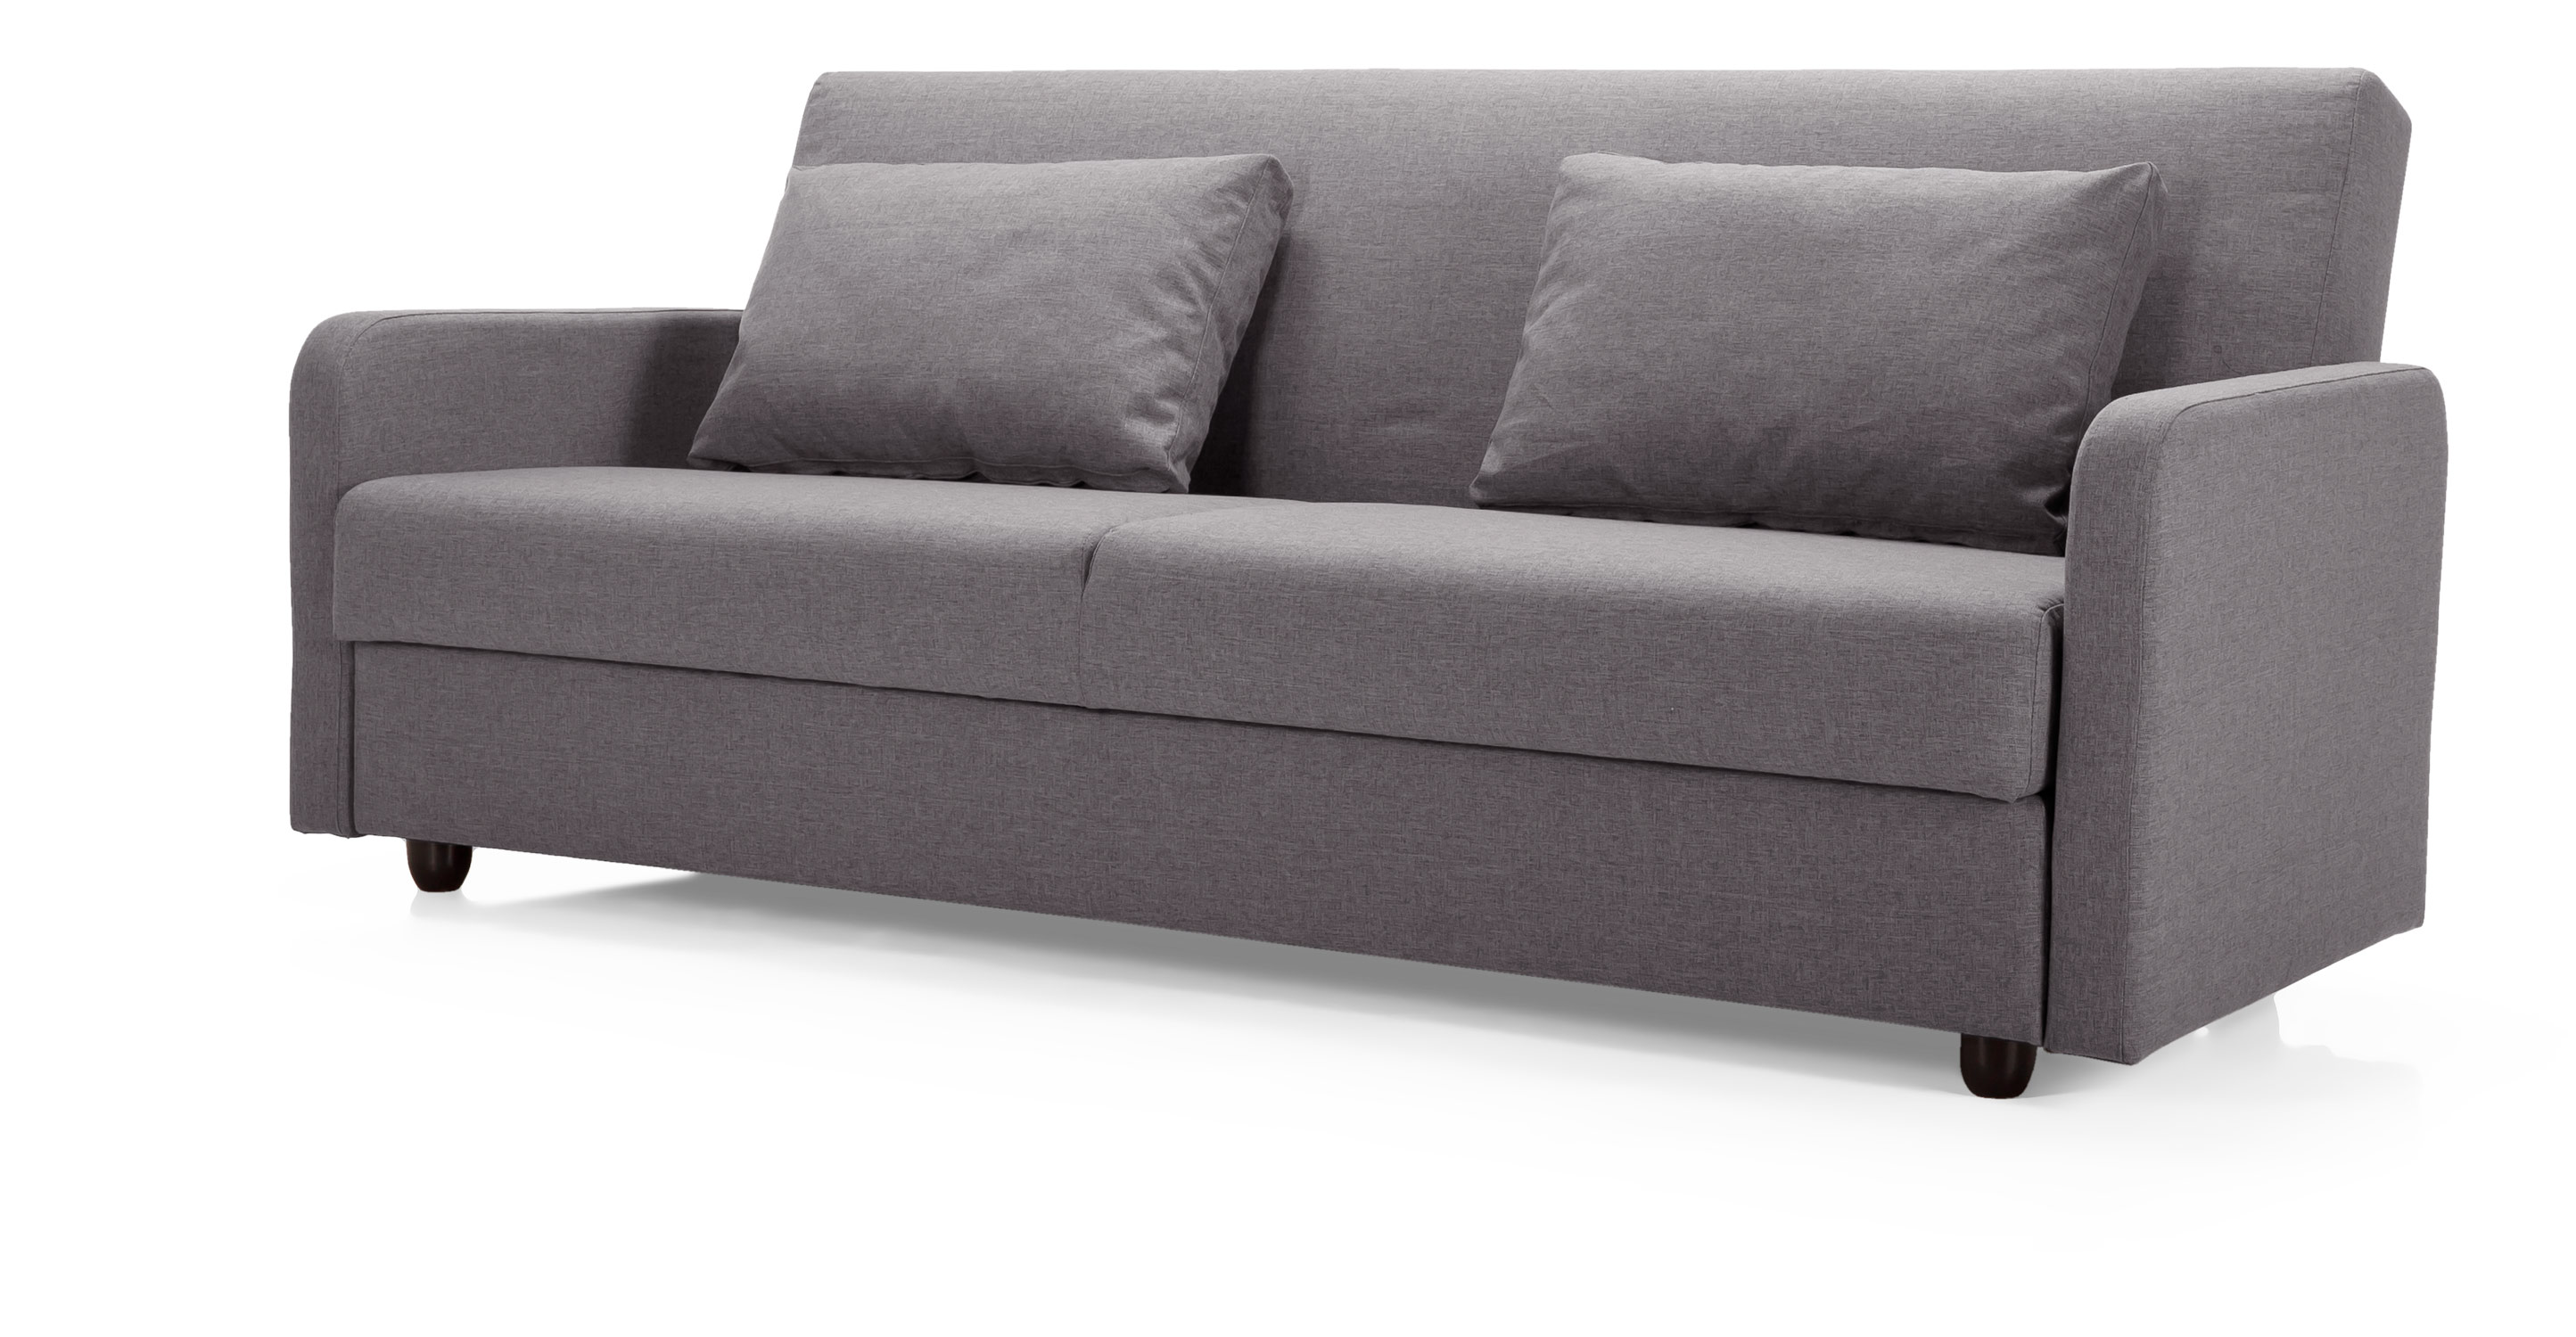 Weston sofa bed in basalt grey for 90 cm sofa bed